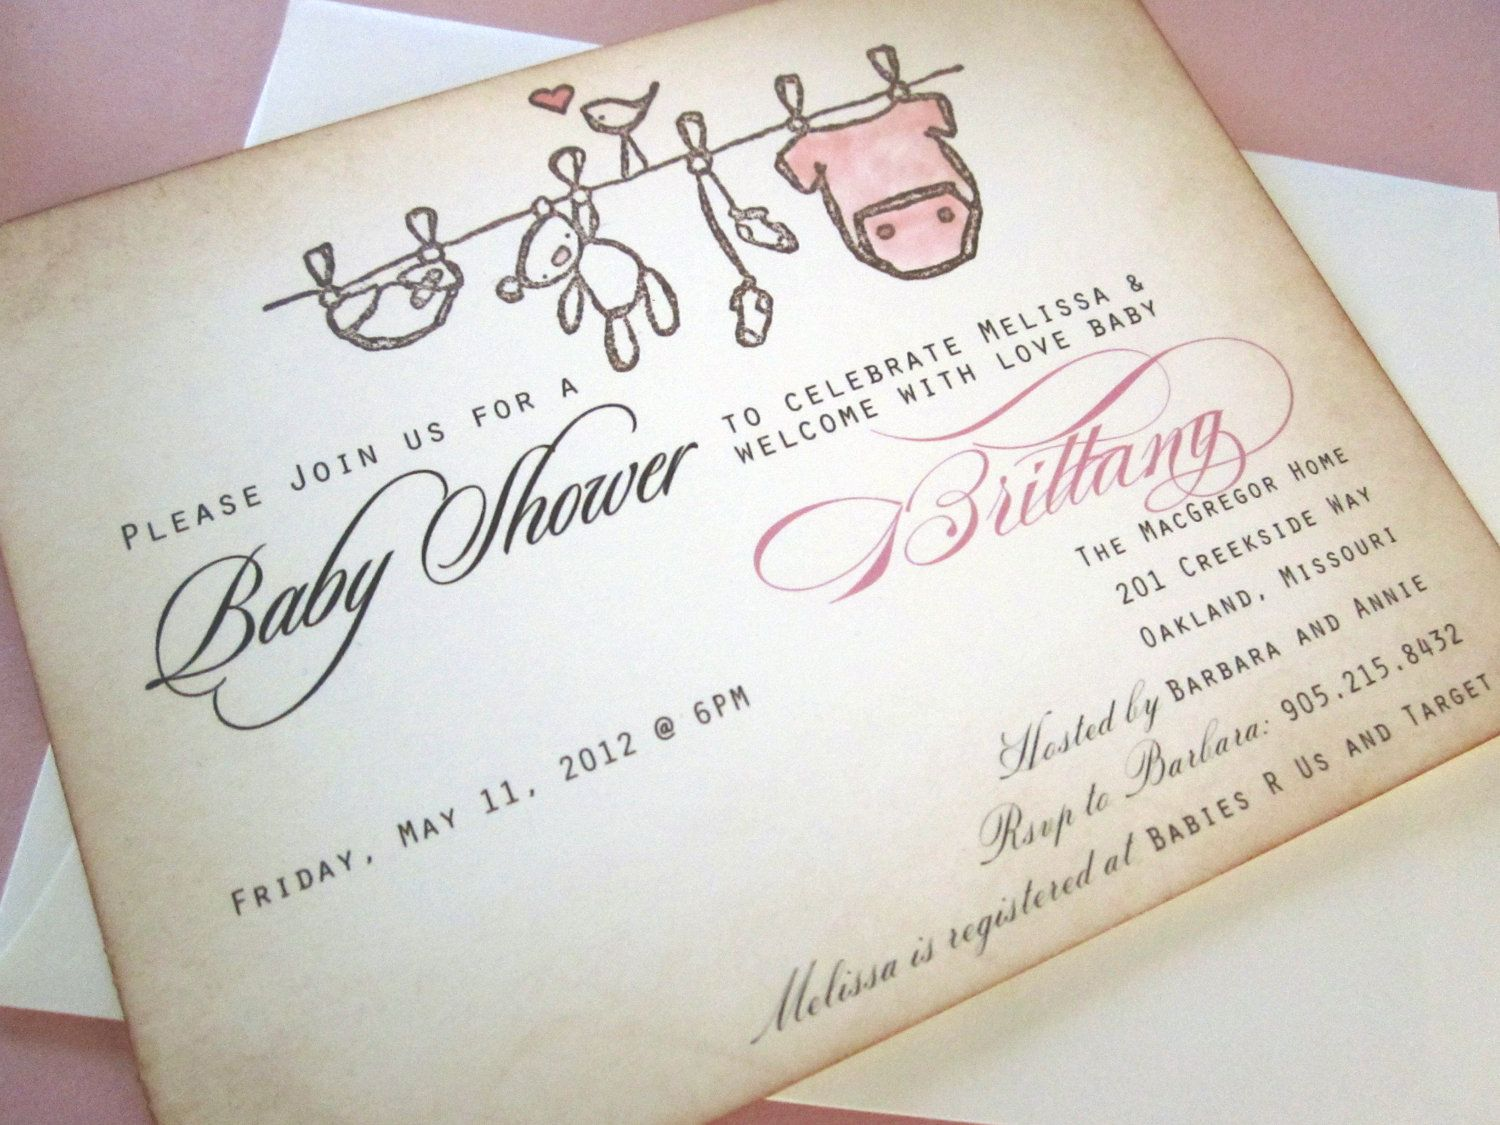 Baby Shower Invitation AS SEEN ON Disney Baby  Onesie Clothesline   Vintage  Appearance  Set